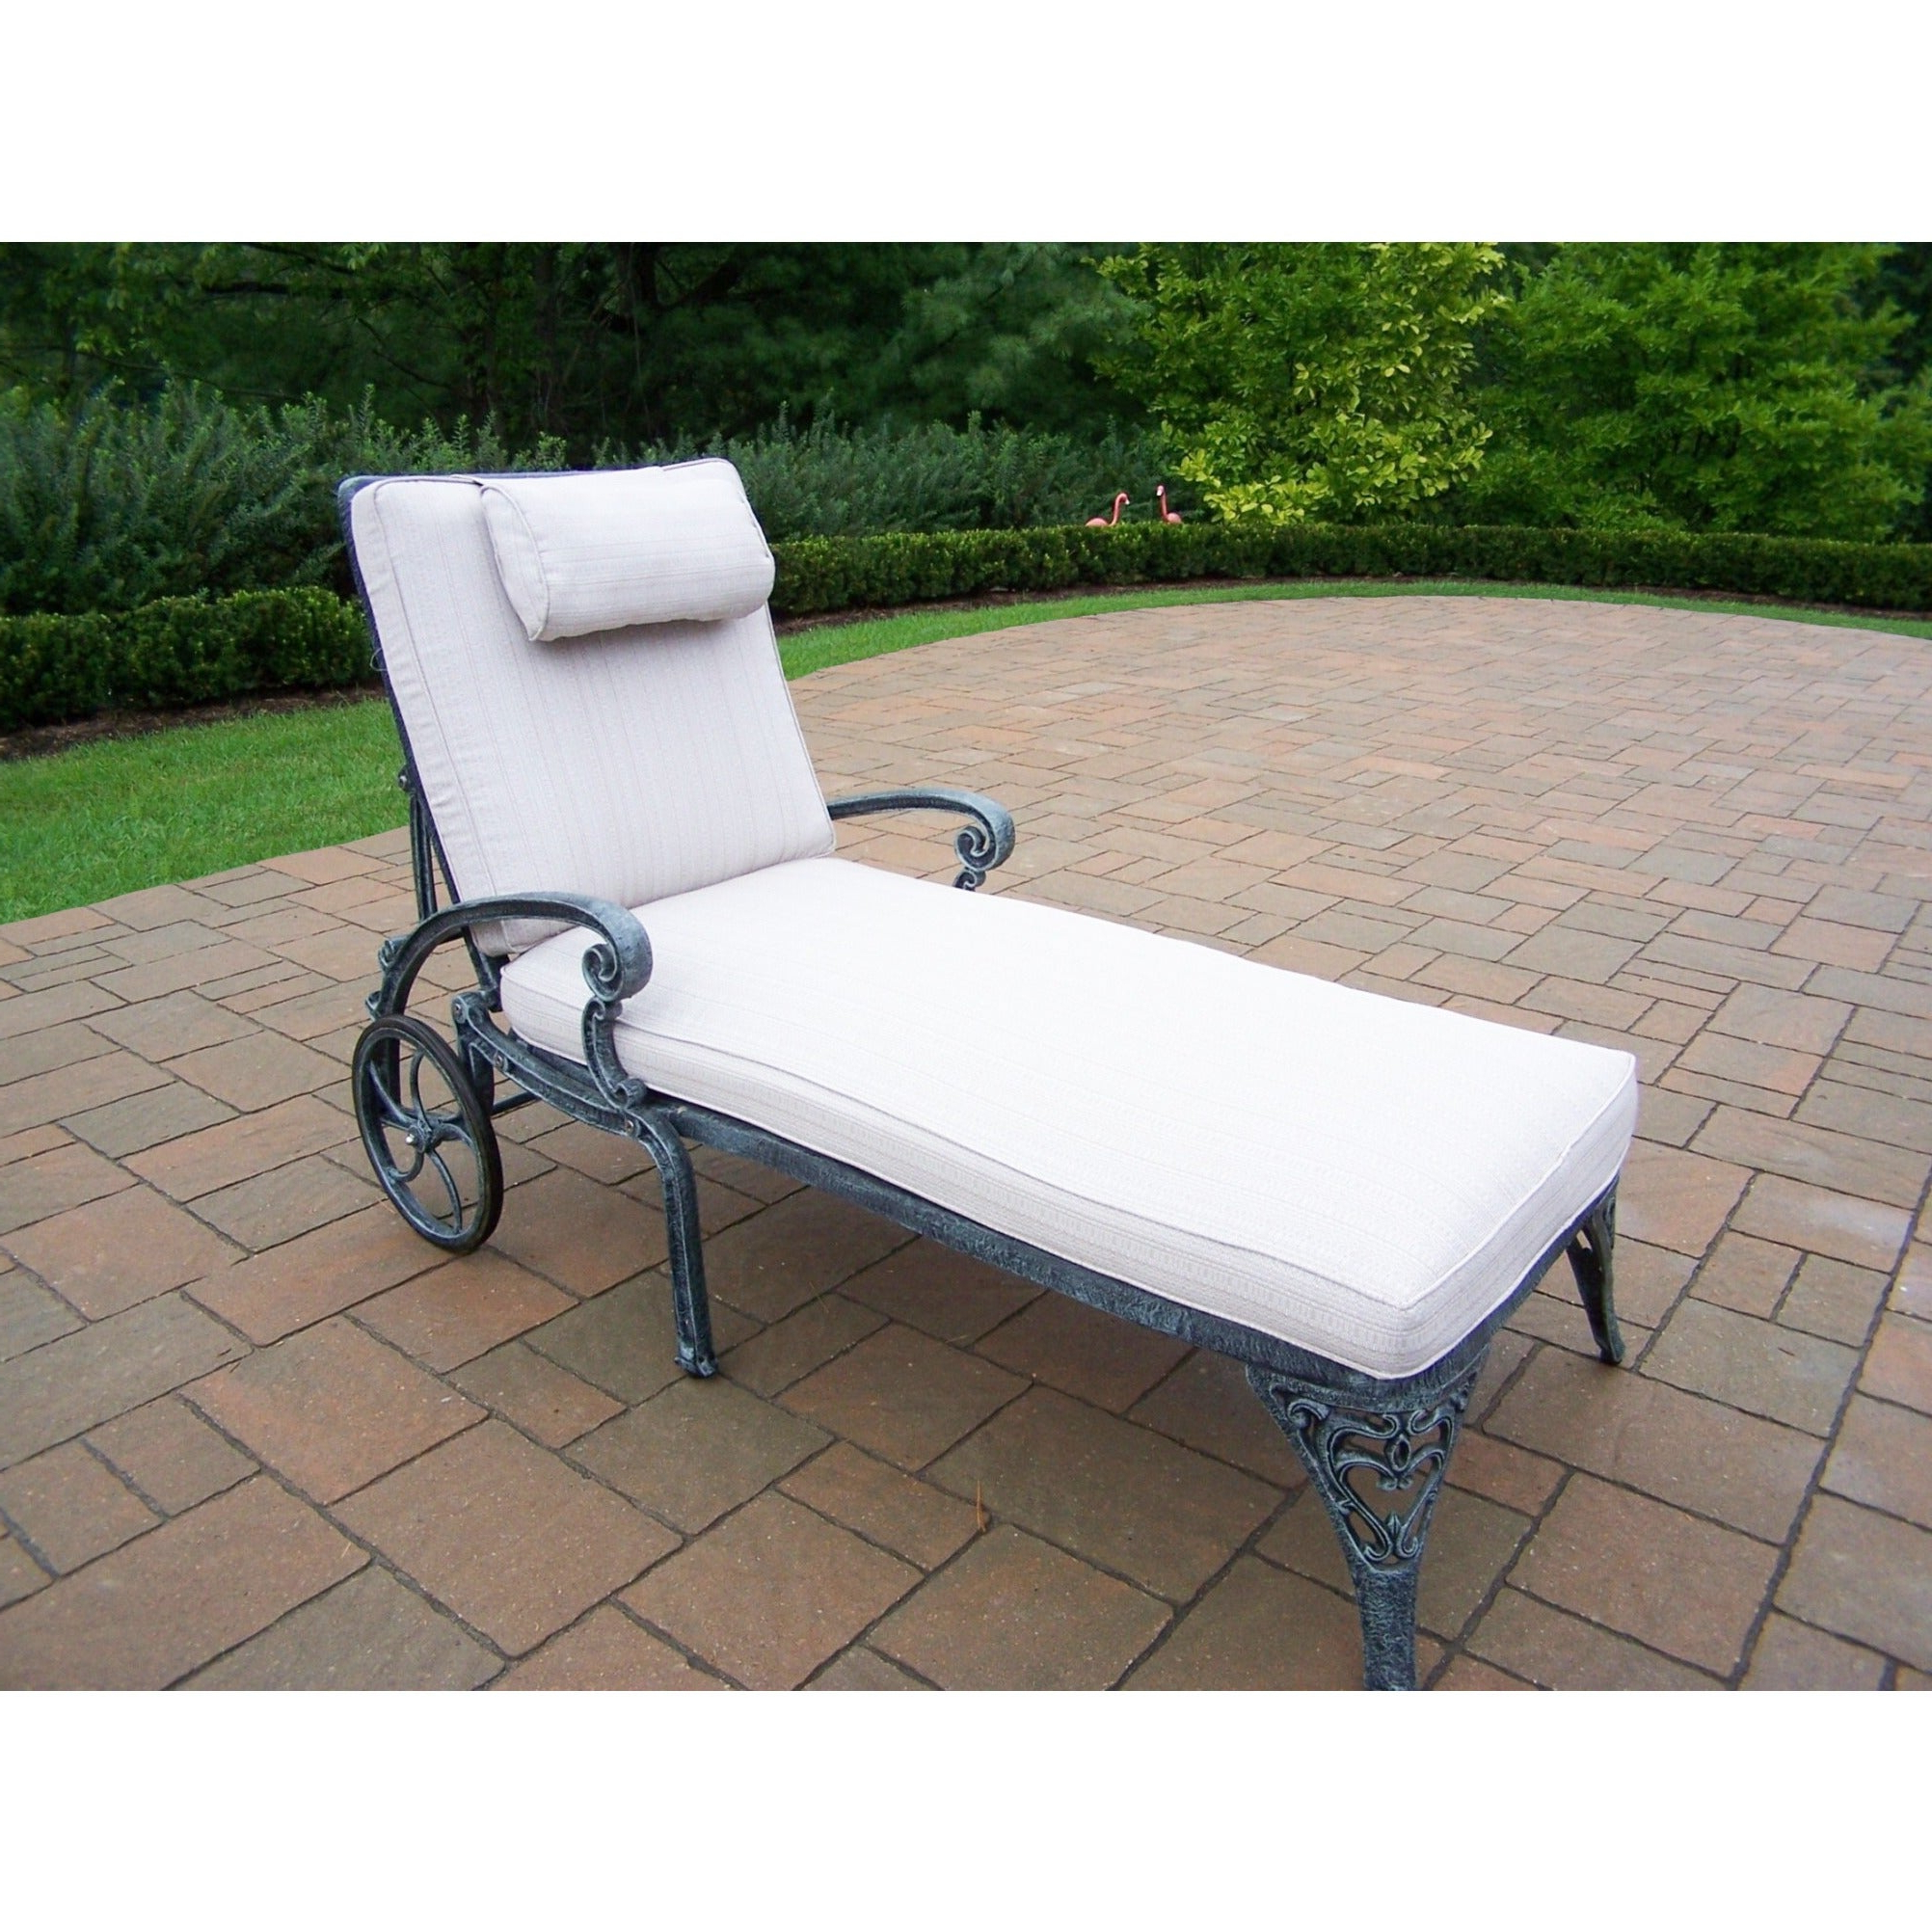 Havenside Home San Juan Cast Aluminum Grey Chaise Lounge With Cushion Pertaining To Most Popular Havenside Home Fenwick Chaise Lounge Chairs (View 7 of 25)